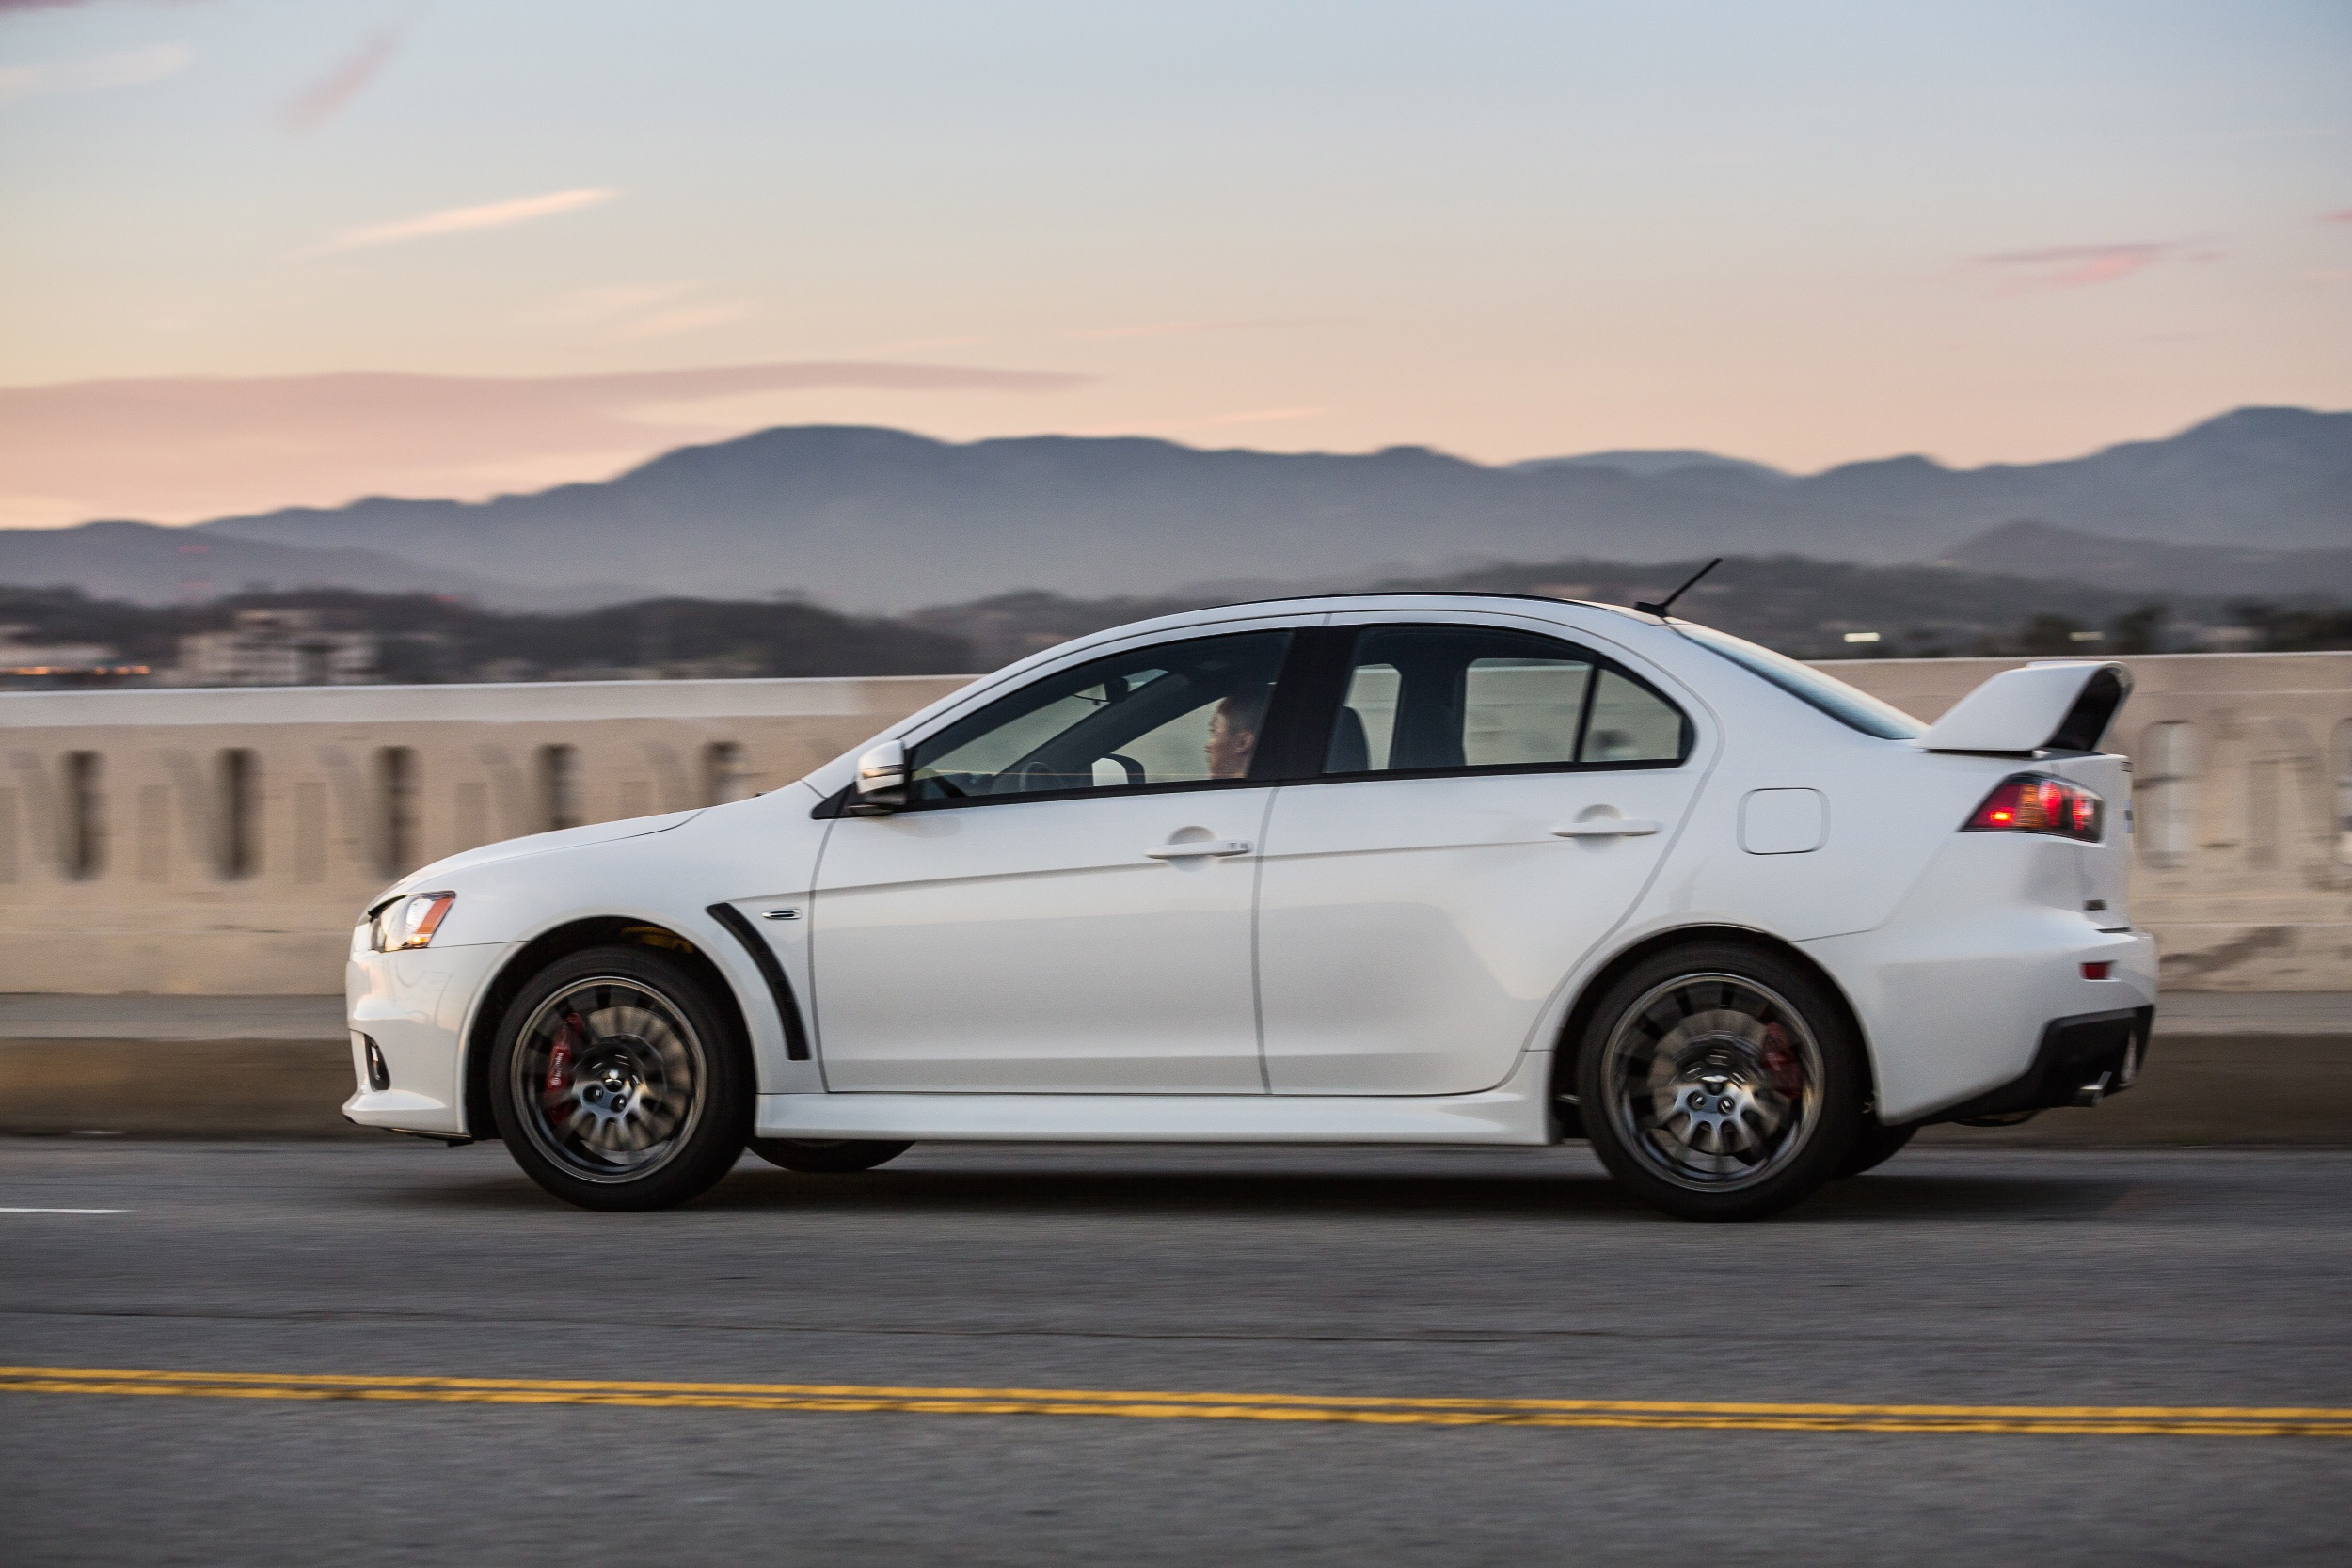 2016 Lancer Evolution >> Farewell to Mitsubishi Evo X with 303 hp Final Edition Image 388264